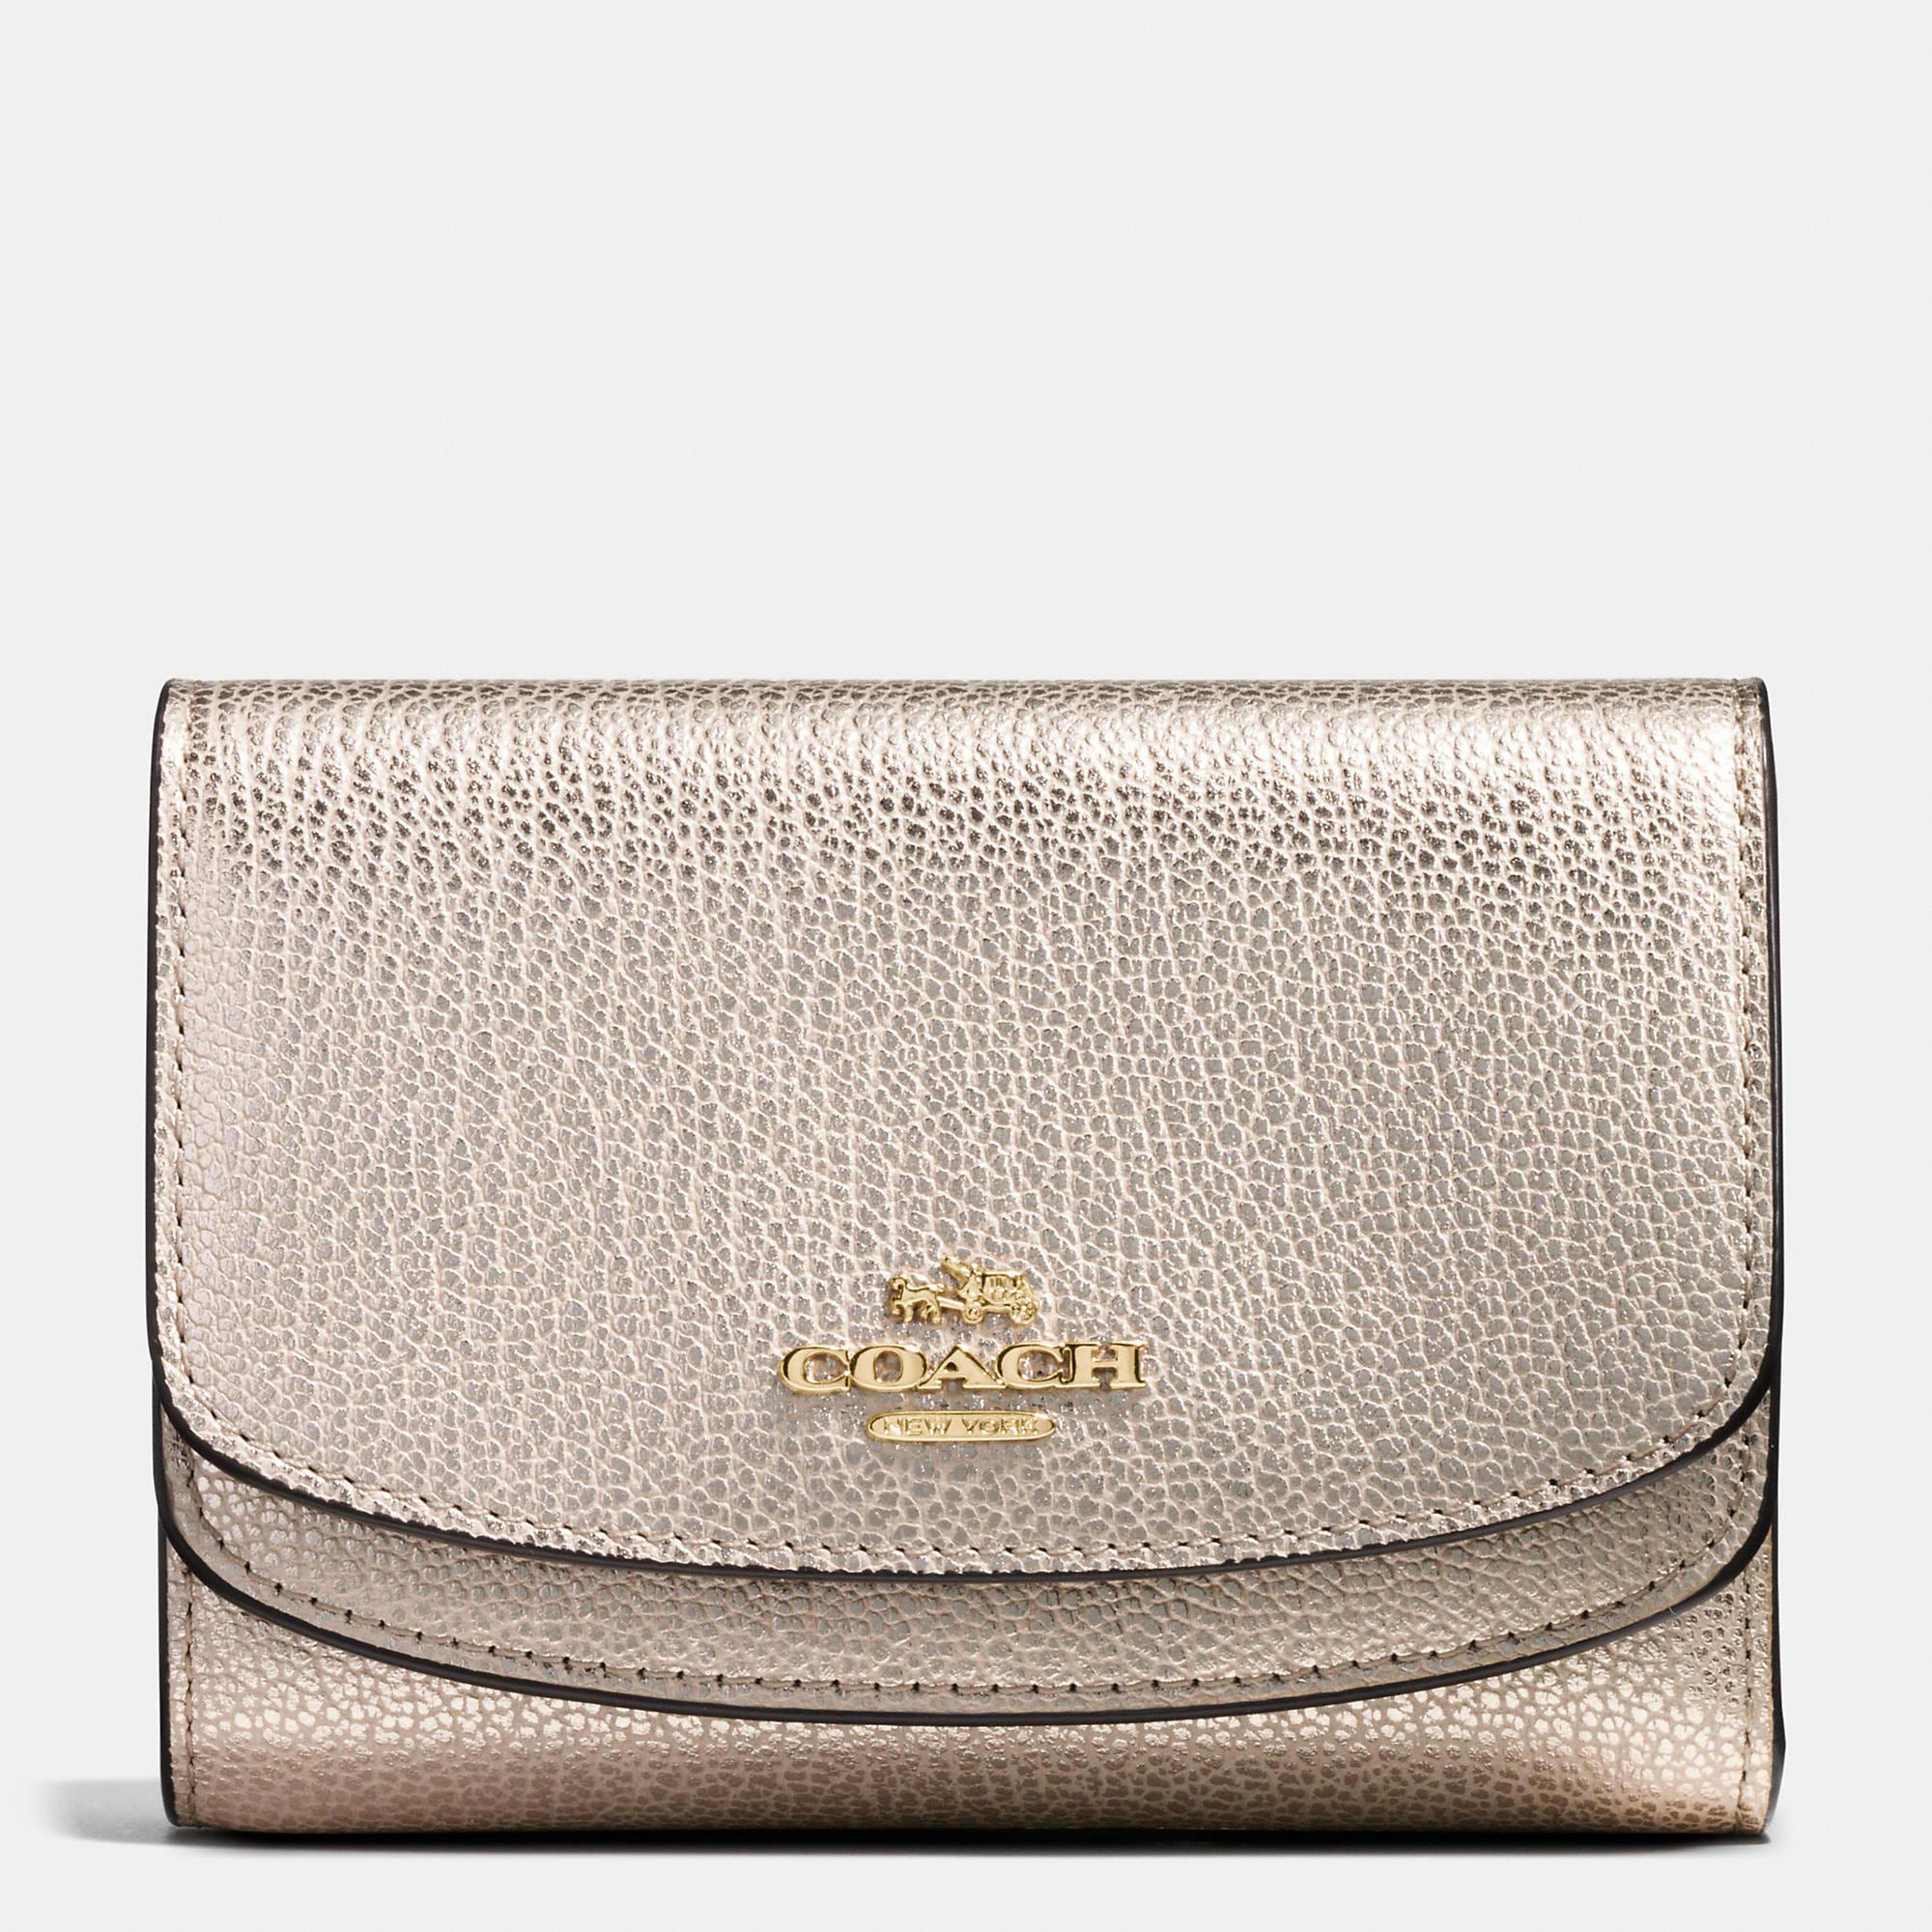 Coach Medium Double Flap Wallet In Pebble Leather